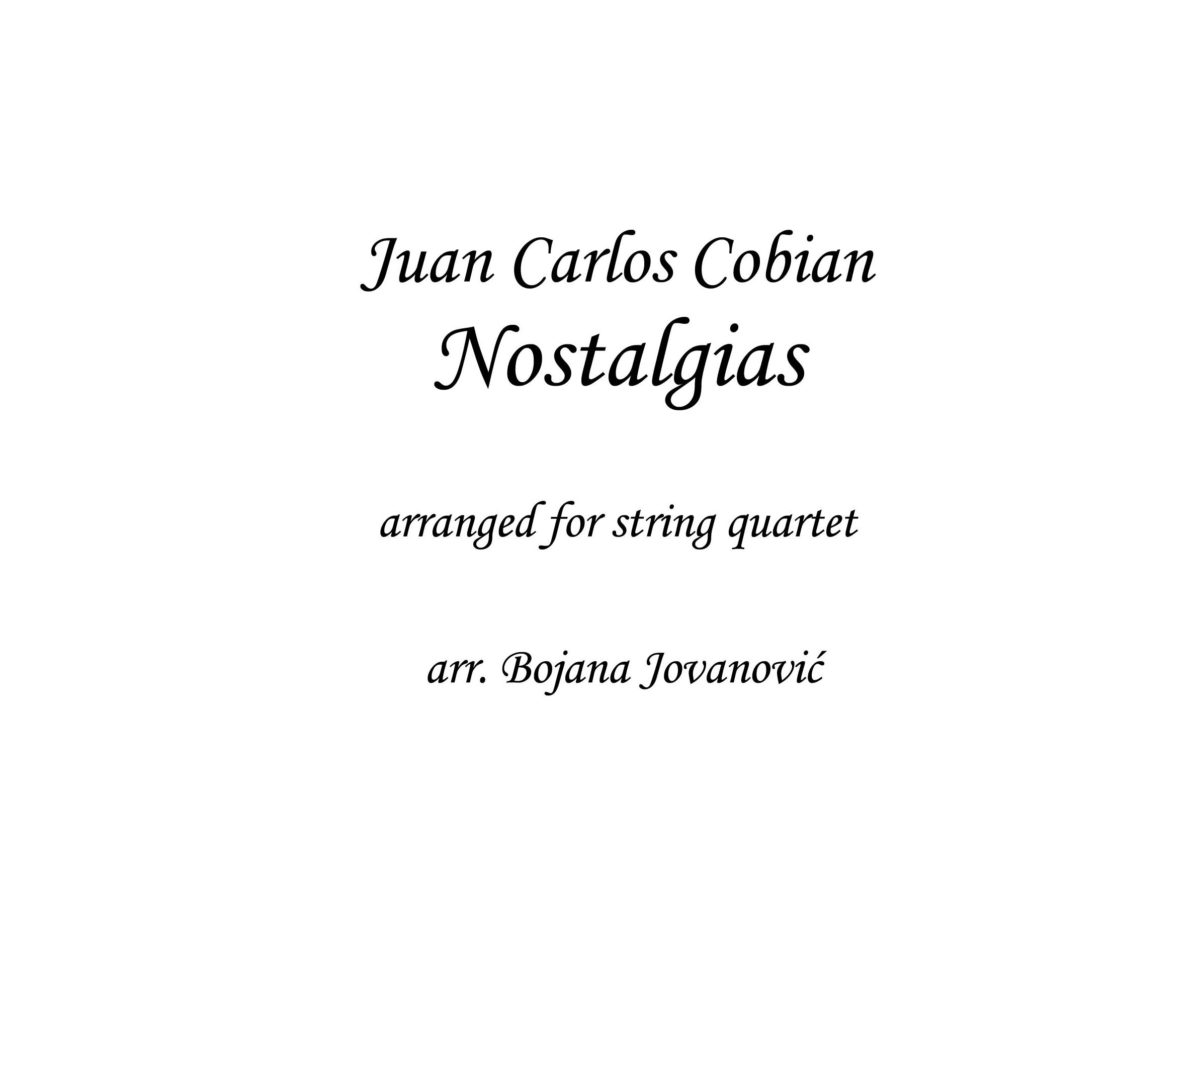 Nostalgias (J. C. Cobian) - Sheet Music